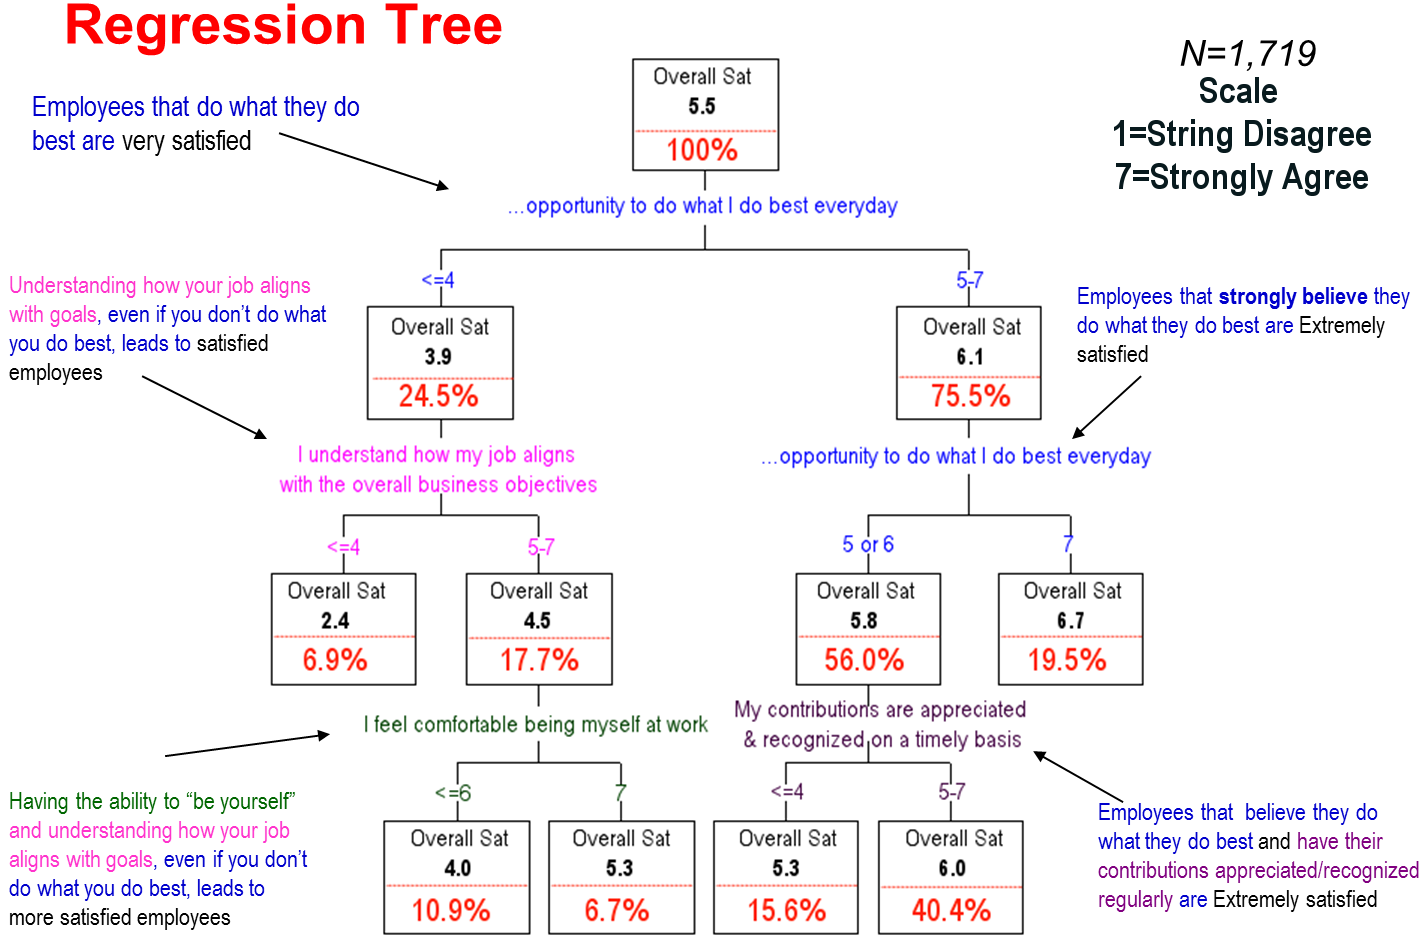 regrssion tree